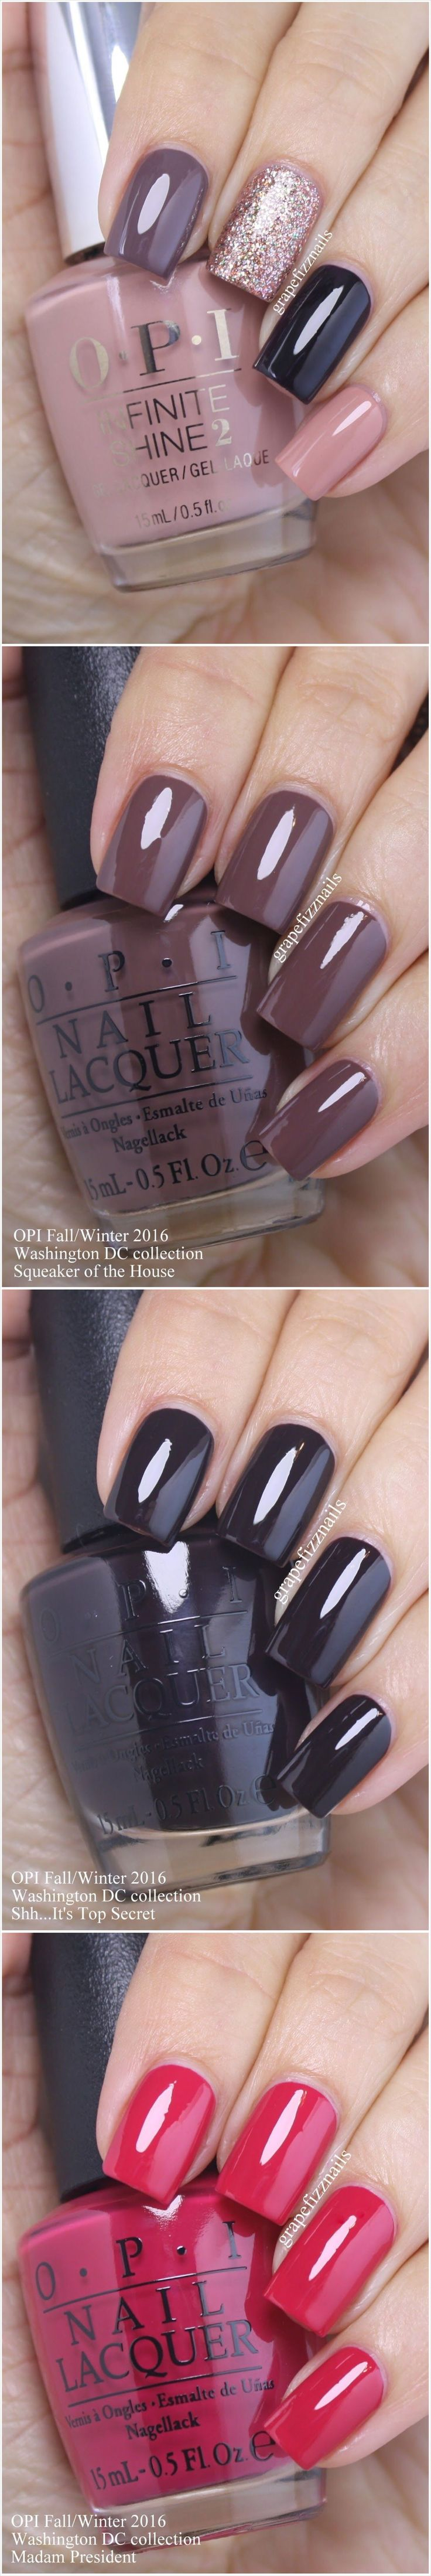 OPI nail swatches fall